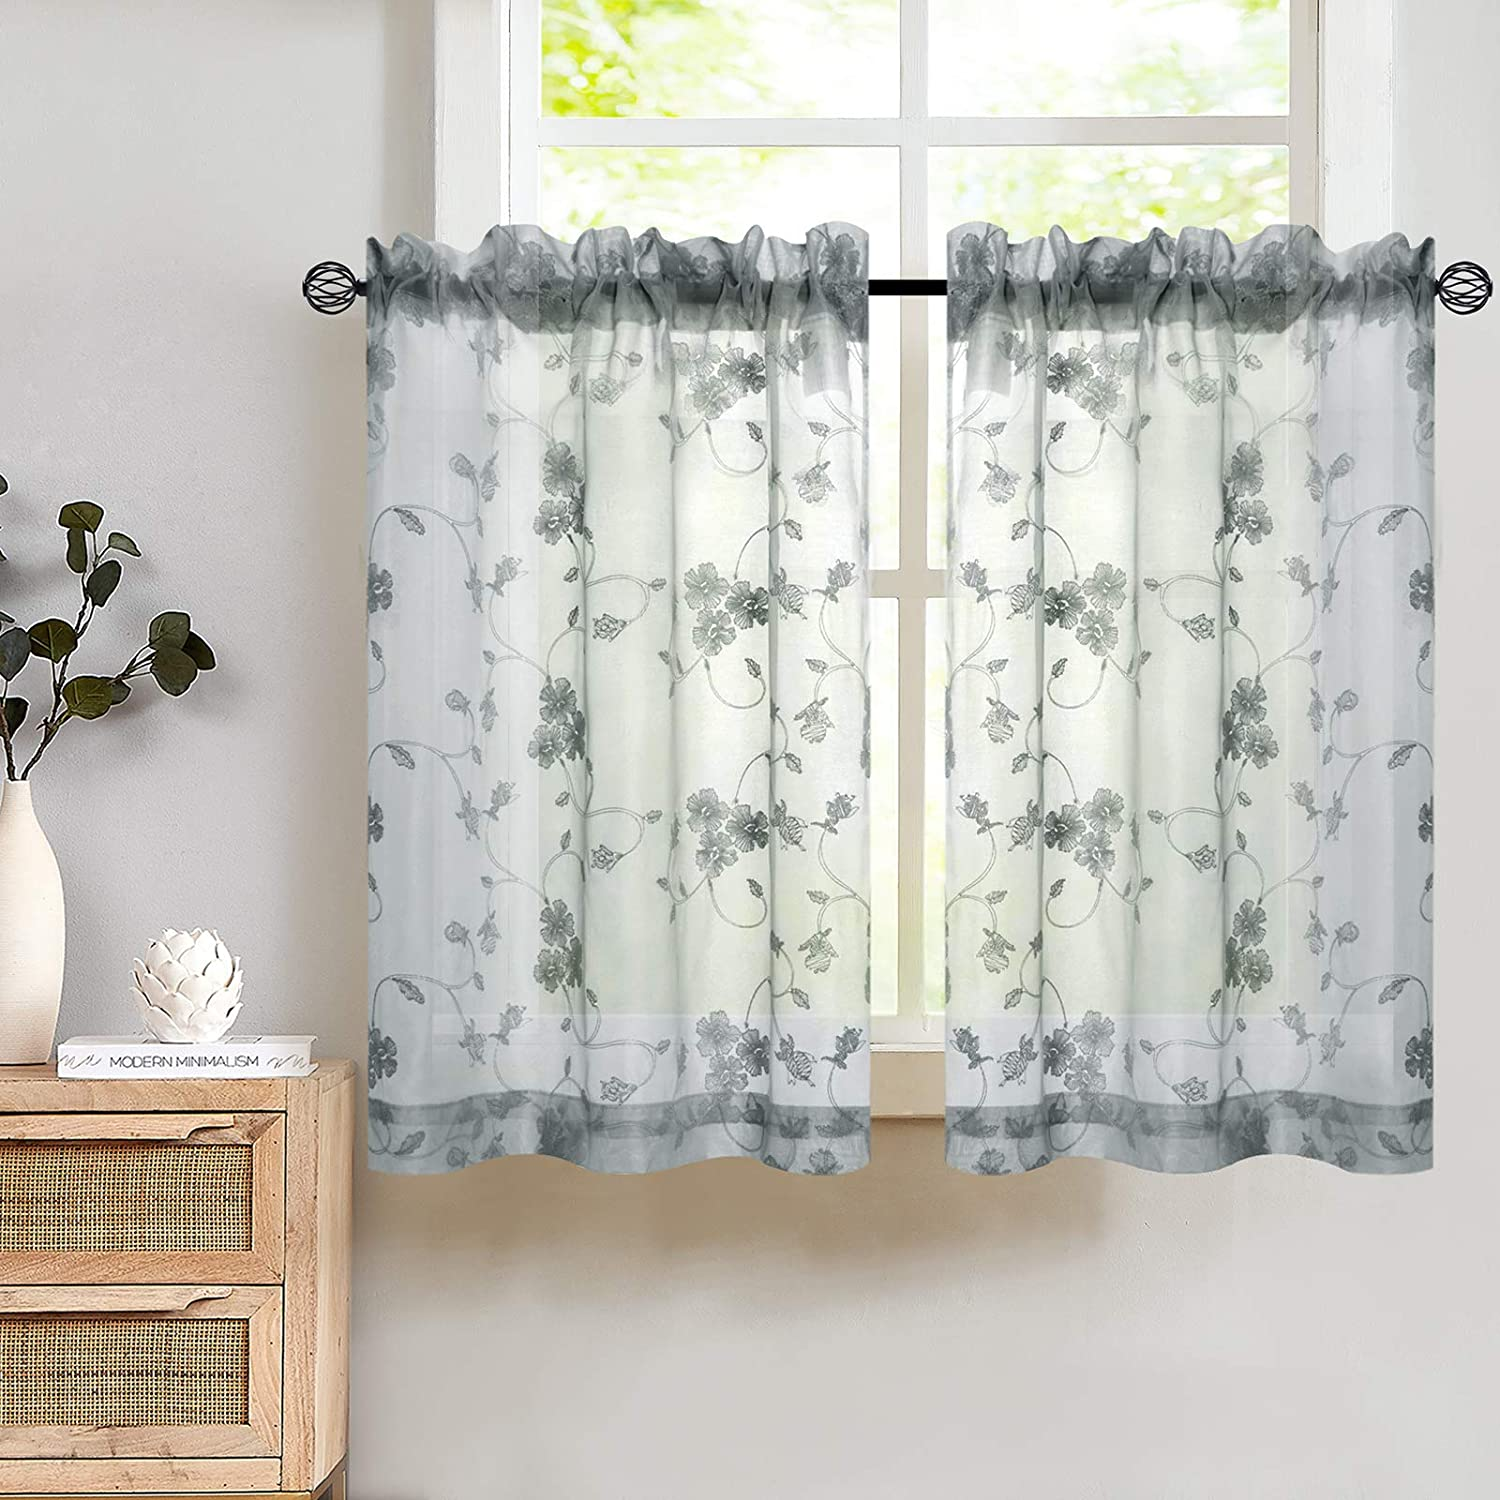 Tier Curtains 122 Inch Length Kitchen Cafe Floral Embroidered Sheer Window  Drapes Grey Semi Sheers Voile Floral Curtain Rod Pocket for Bathroom 12 Pair